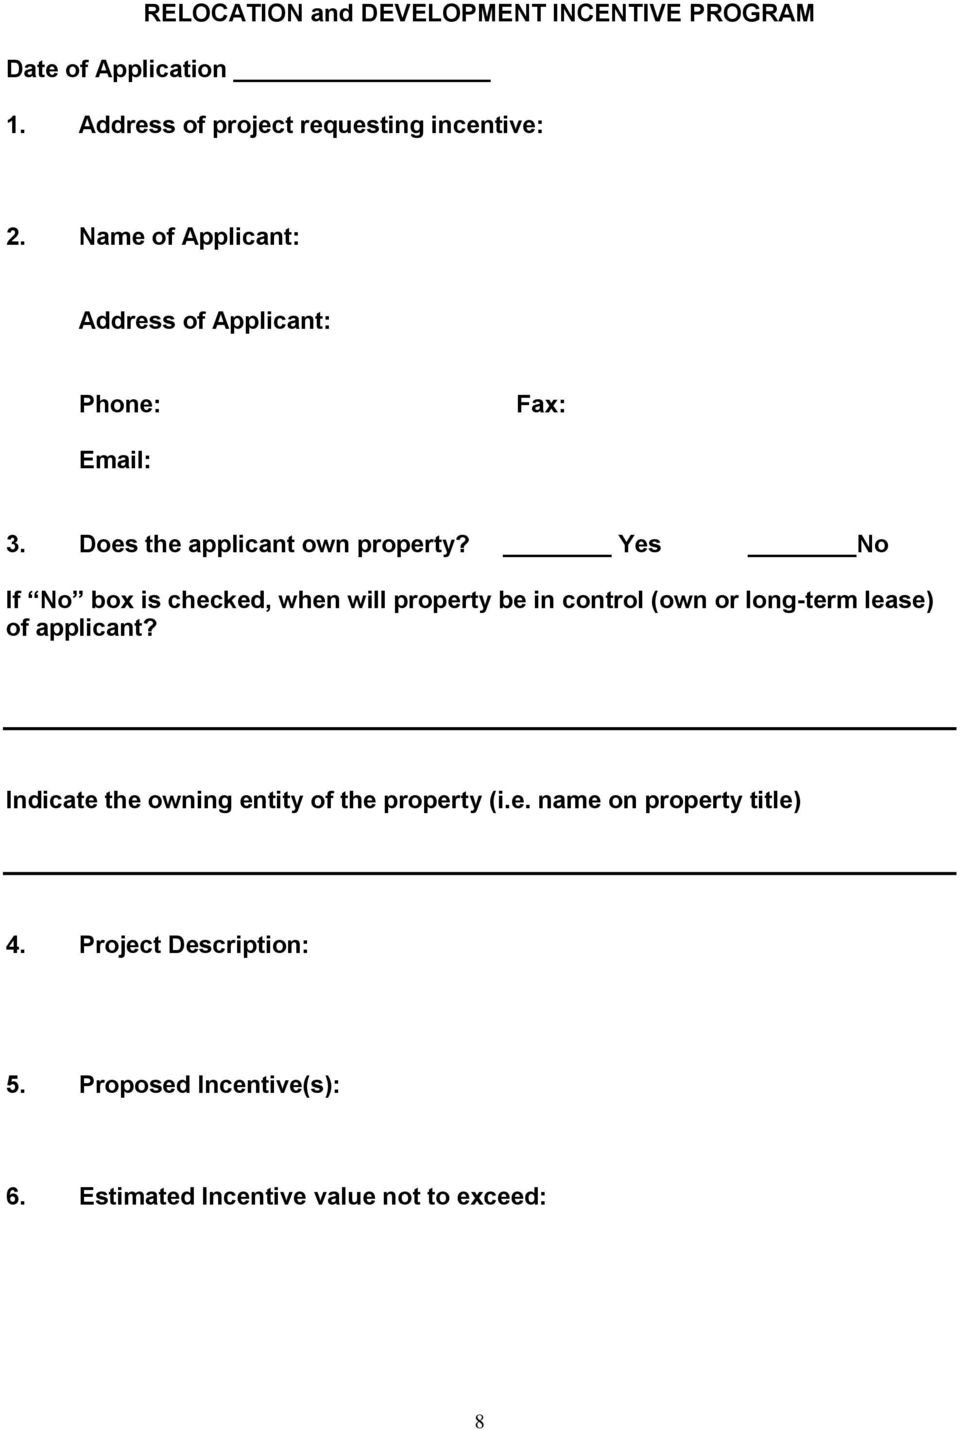 Yes No If No box is checked, when will property be in control (own or long-term lease) of applicant?